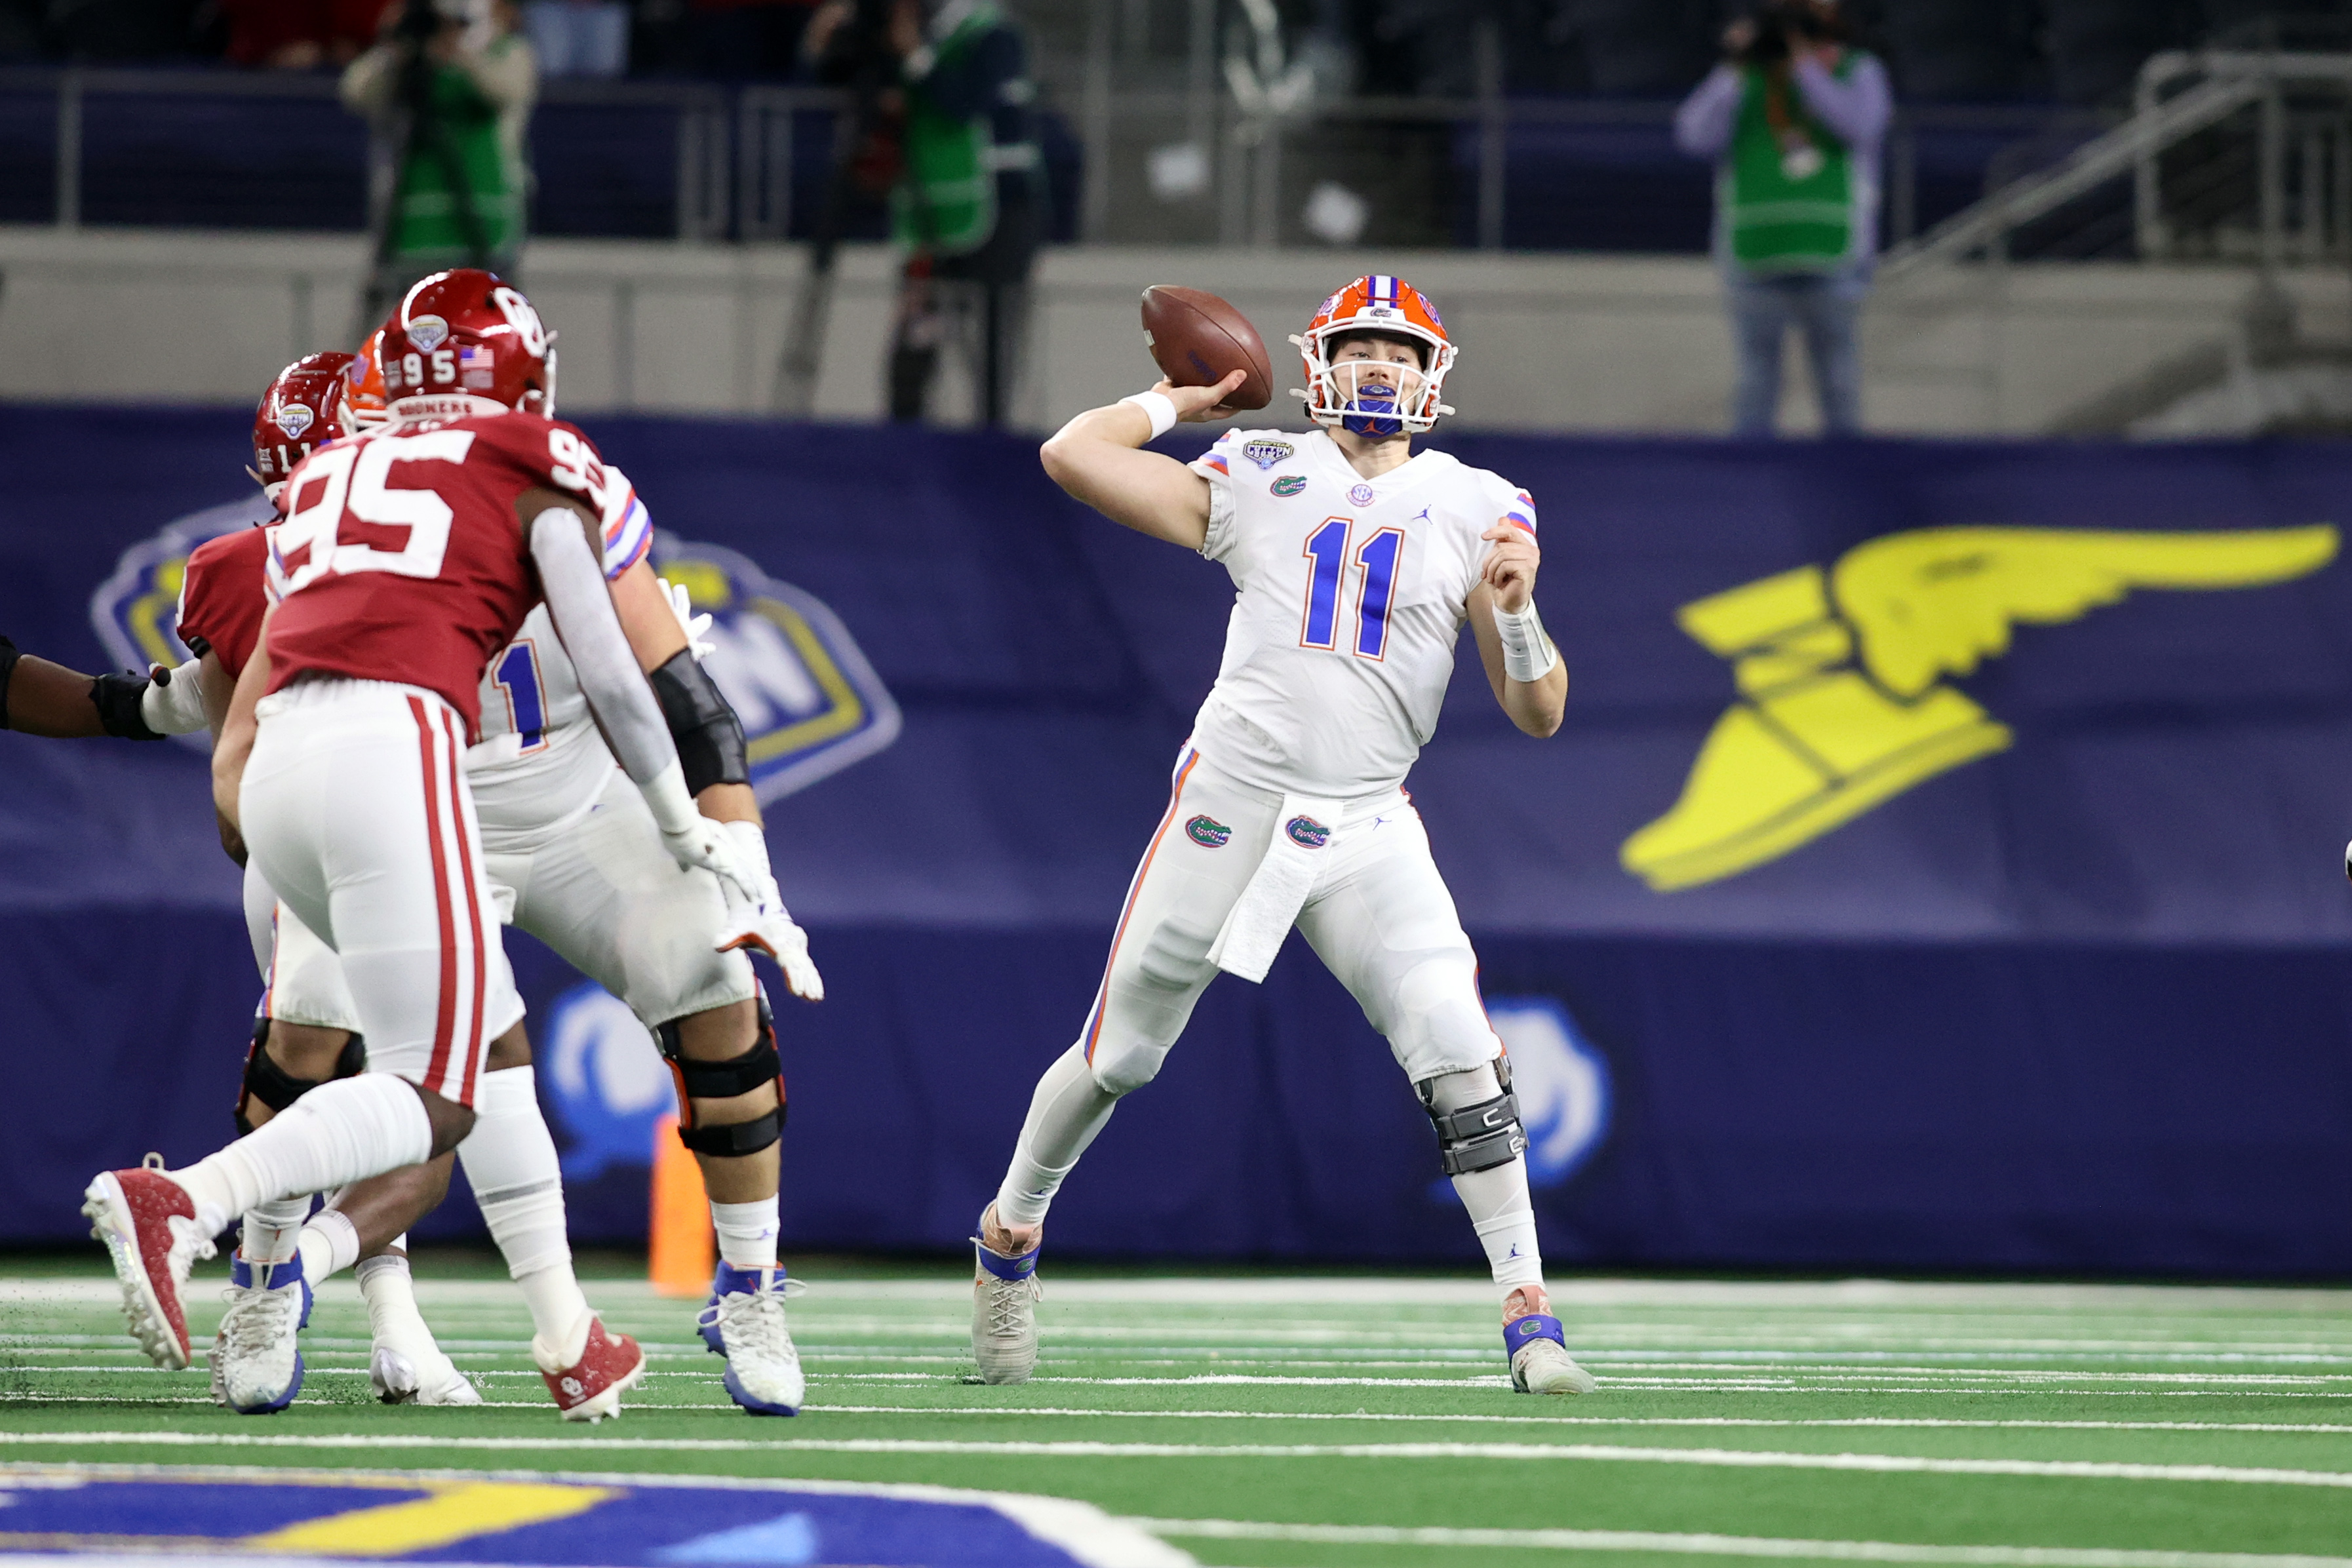 Florida Gators quarterback Kyle Trask (11) throws a pass against the Oklahoma Sooners in the first quarter at ATT Stadium.